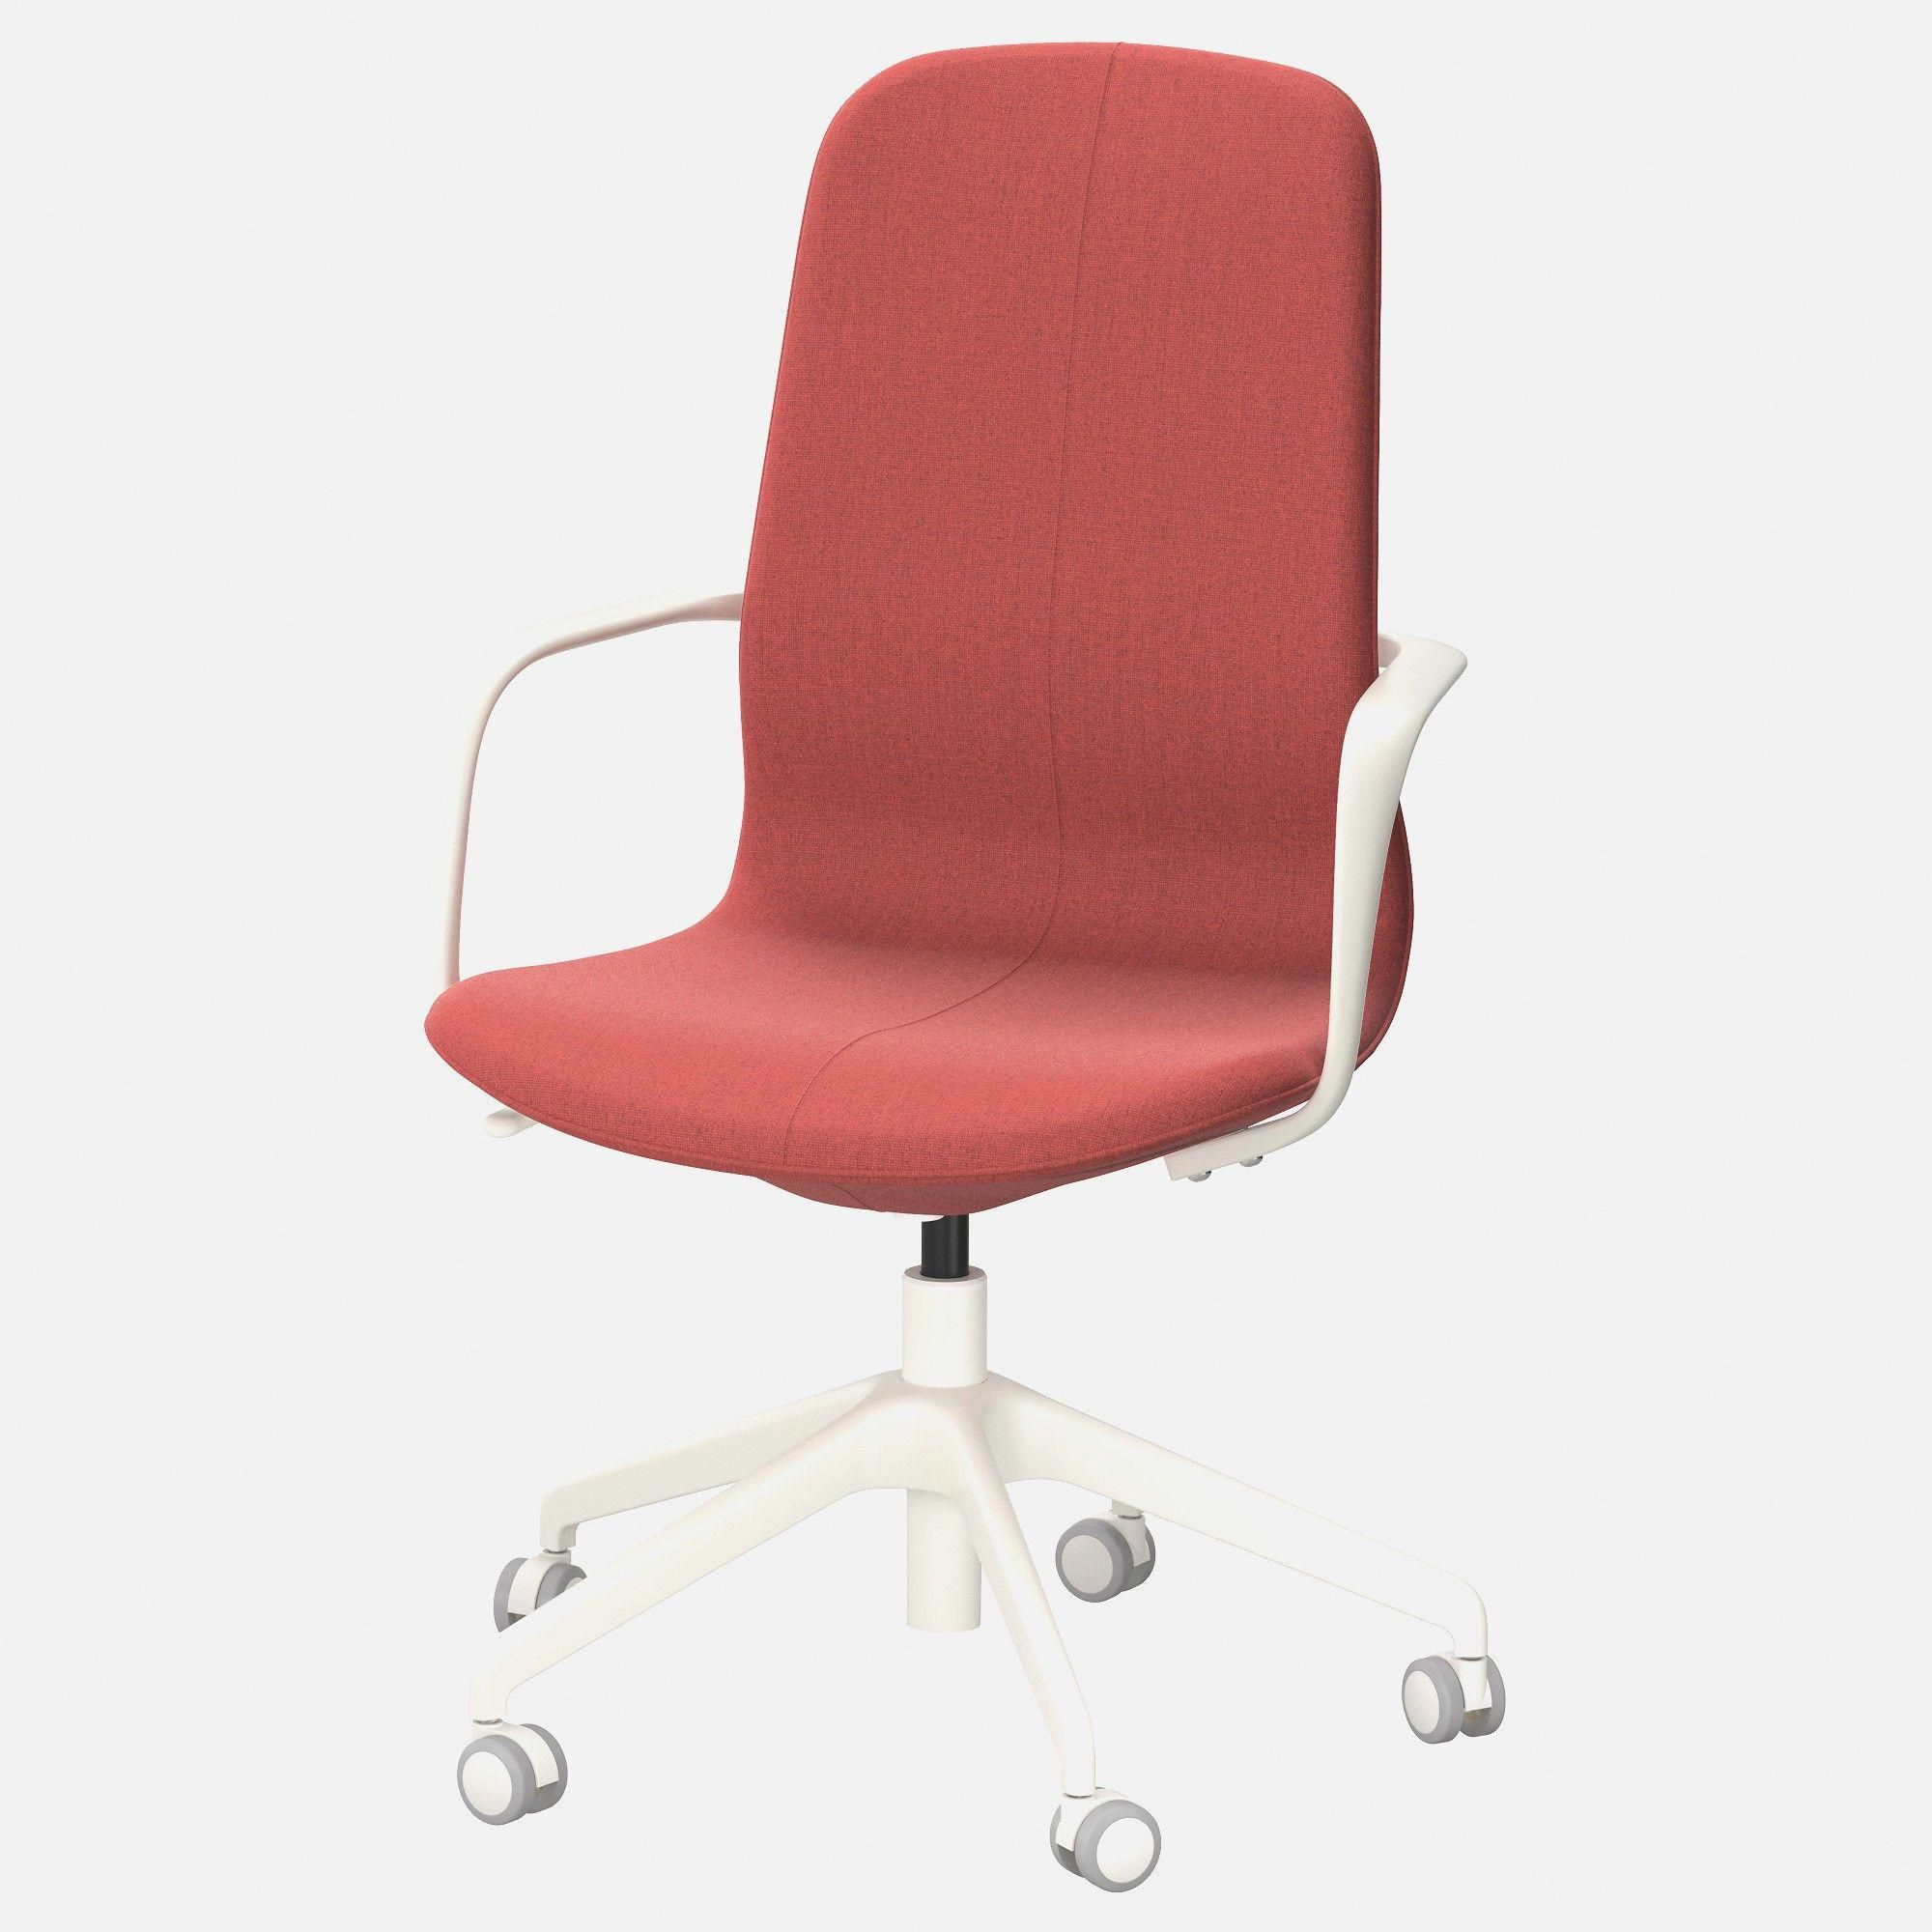 Back Support For Office Chairs Australia Task Without Arms Armless With Wheels Desk Chair No On Casters Lumbar